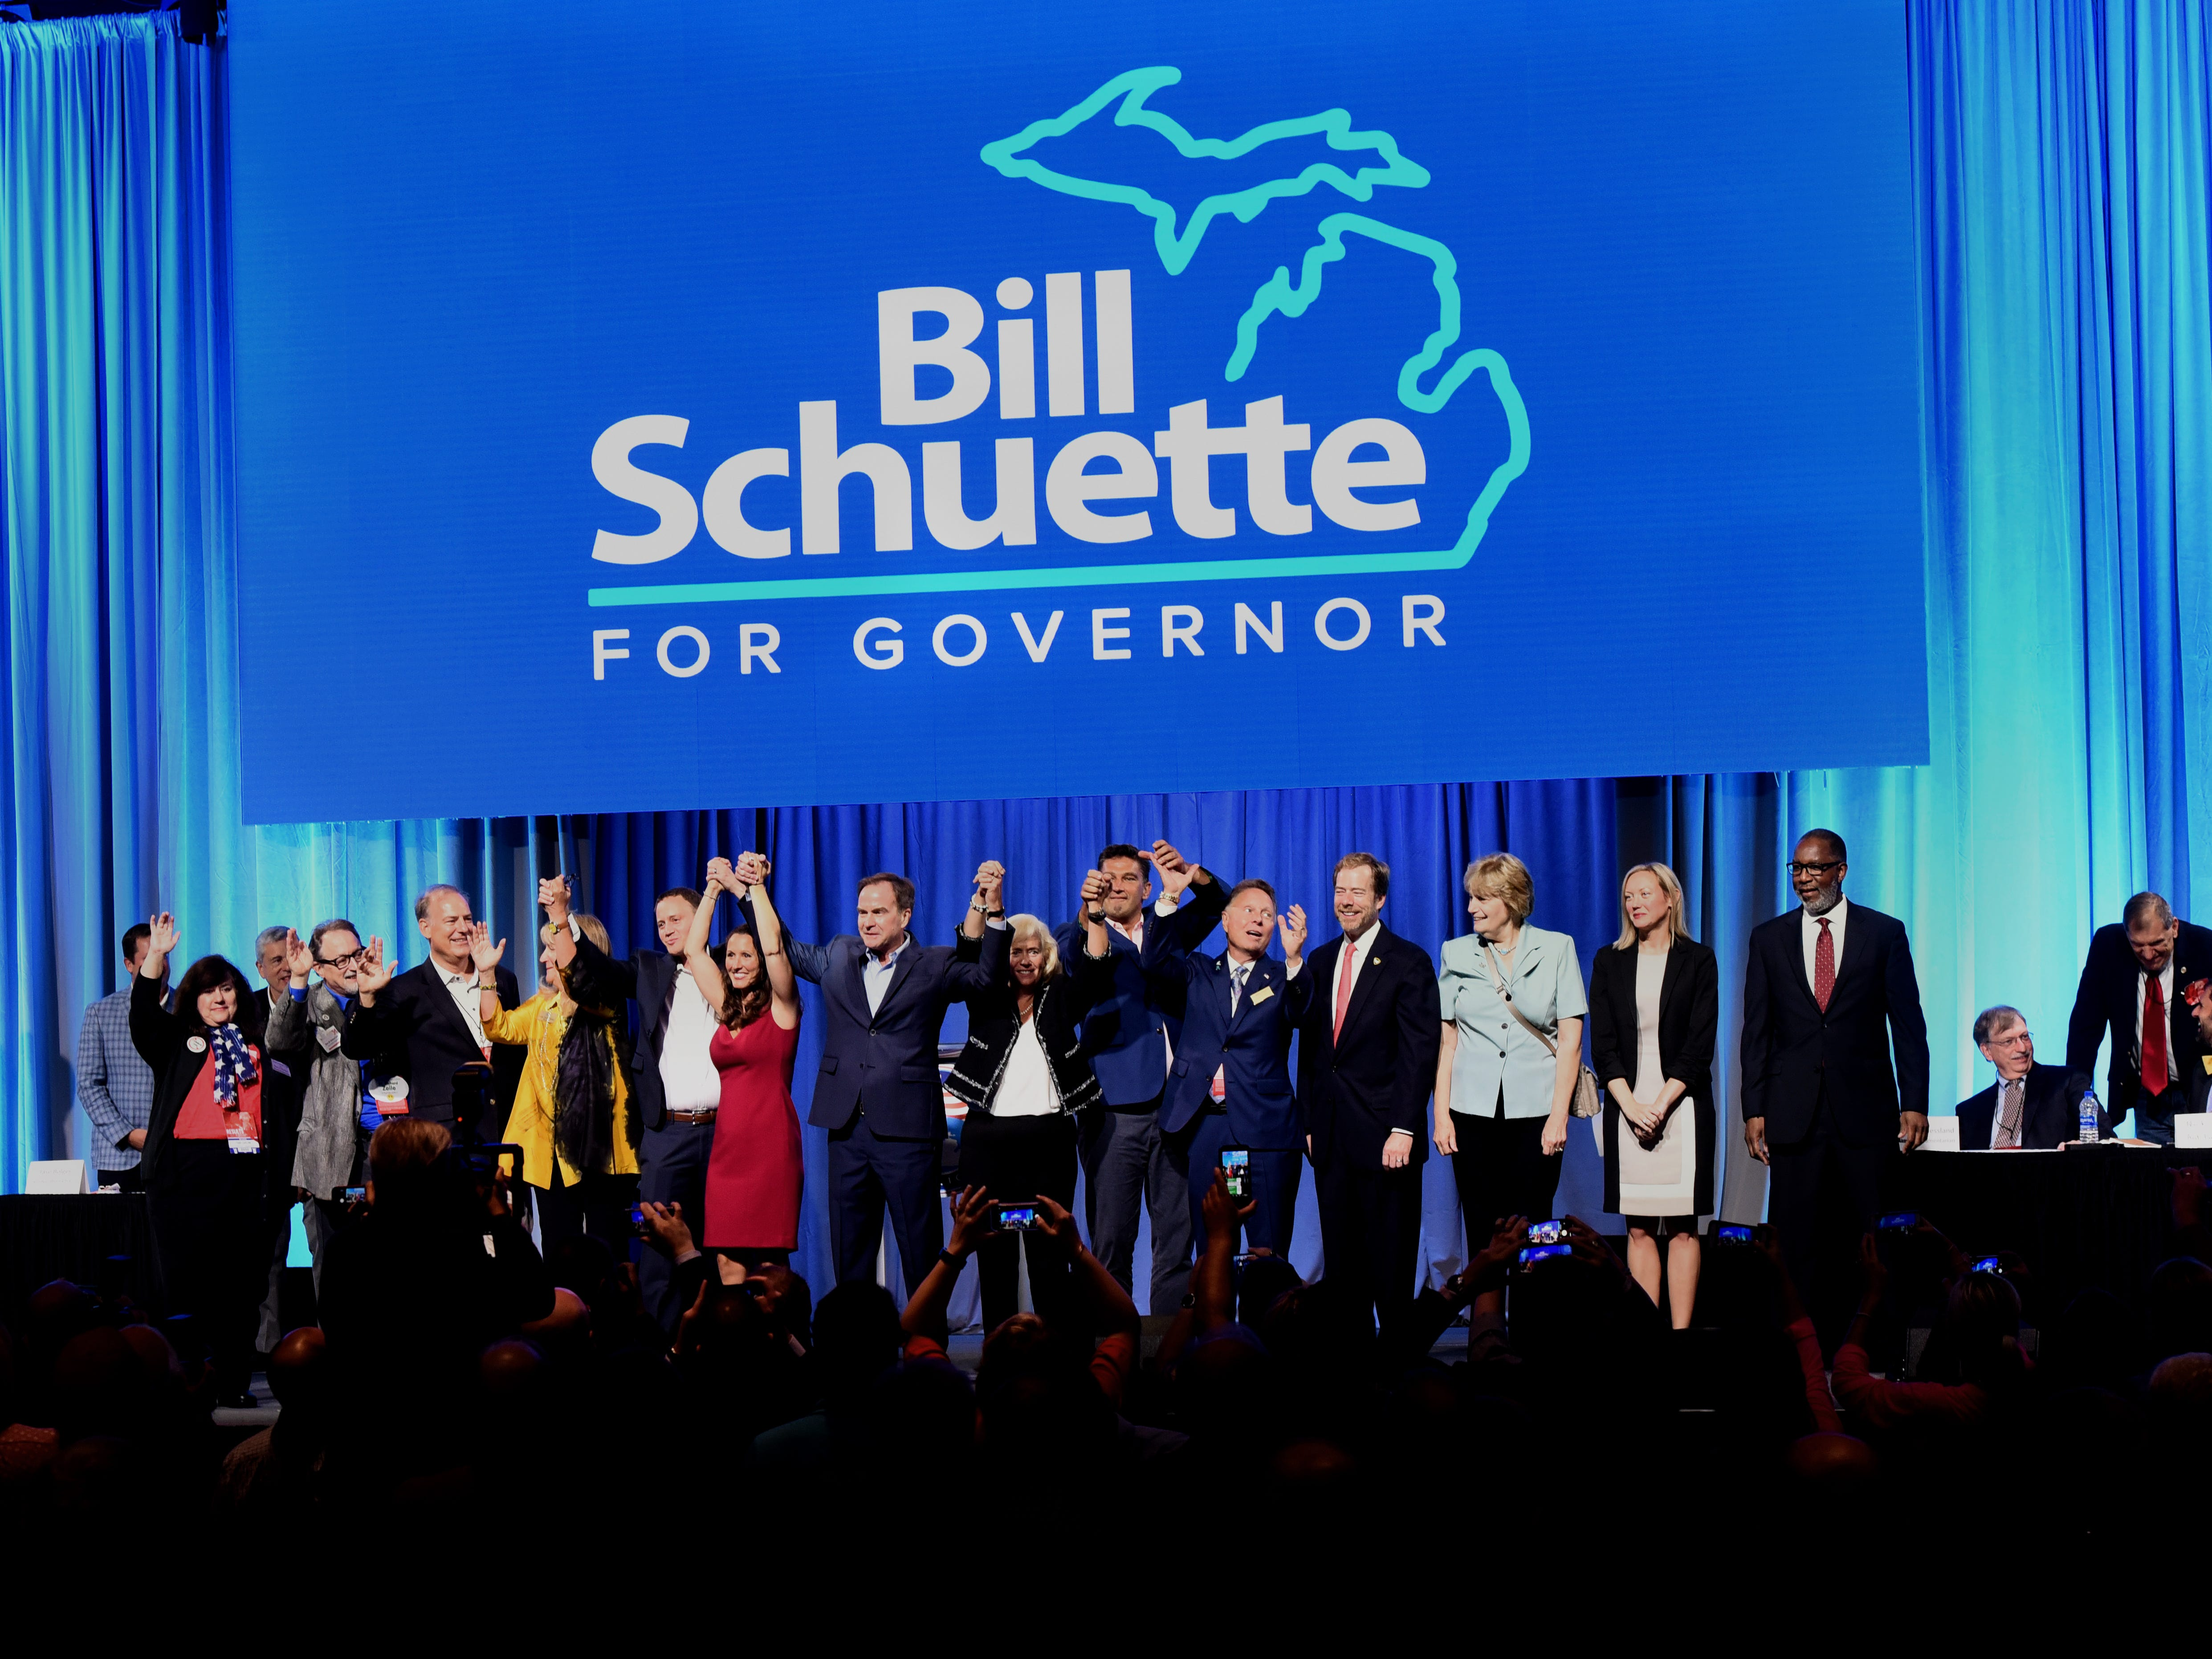 Successful Michigan GOP candidates gather onstage around gubernatorial candidate Bill Schuette at the conclusion of the 2018 Republican State Convention in Lansing.